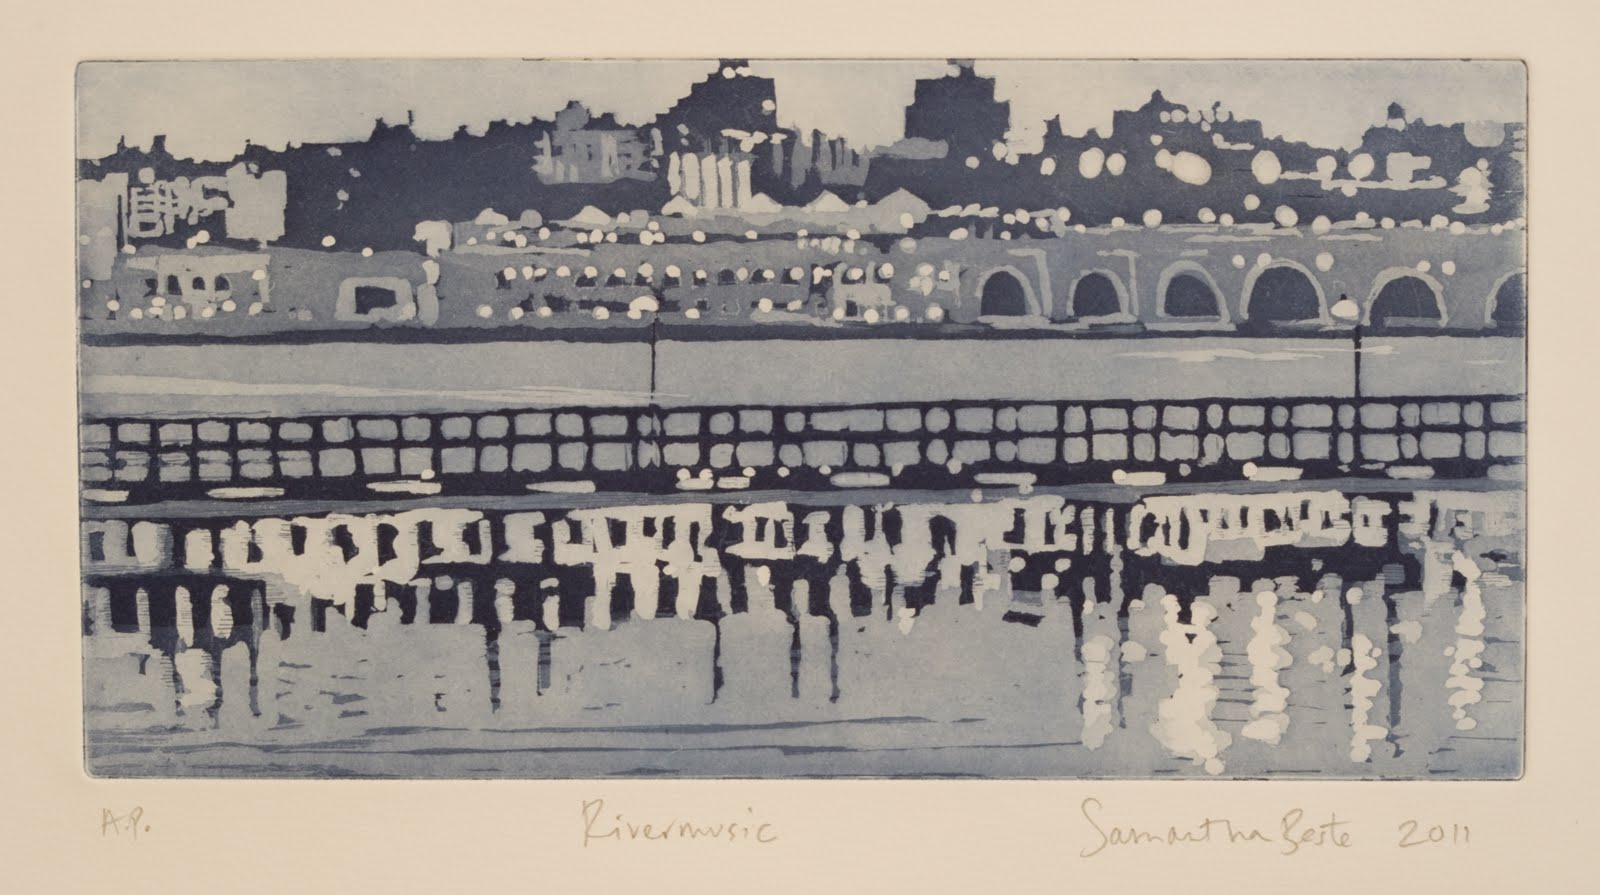 """Rivermusic"", Aquatint with blue ink, 6 x 12 in."